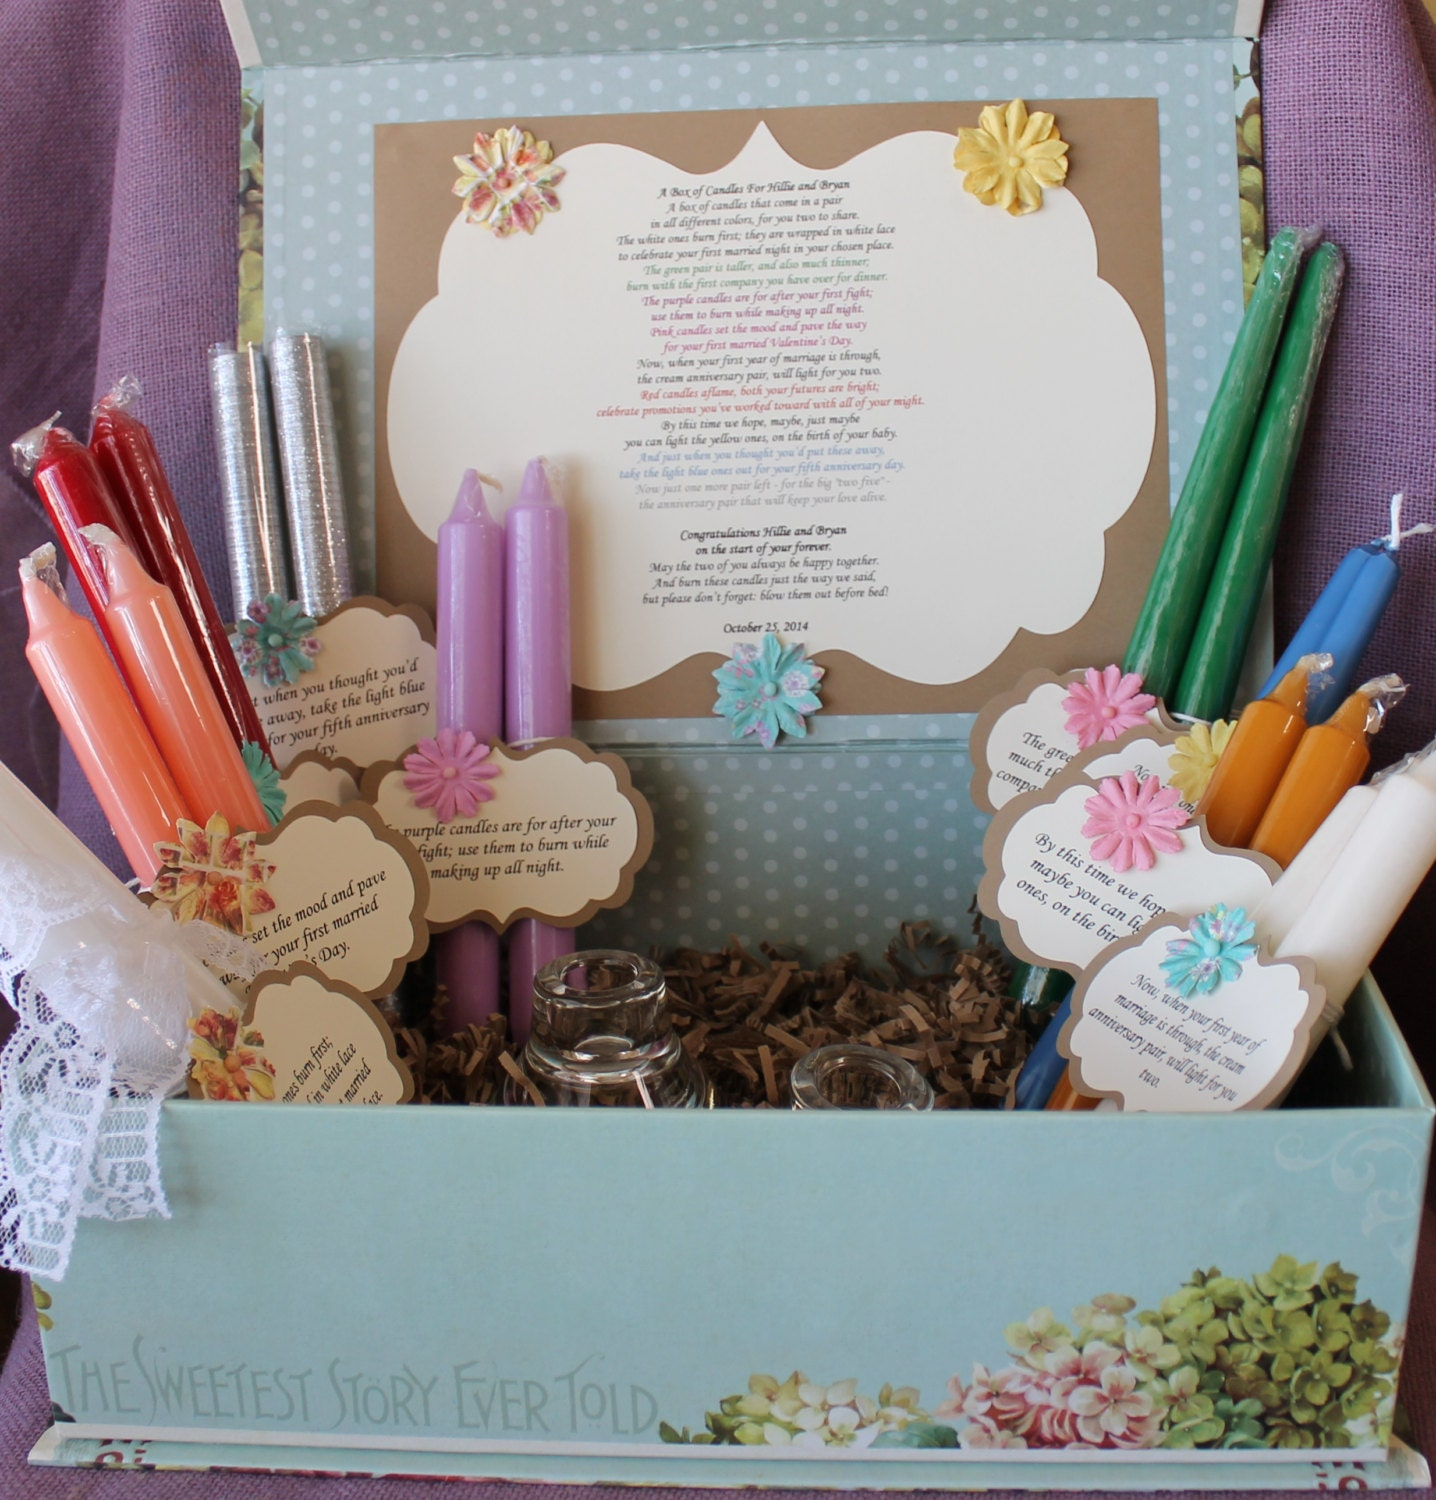 Wedding Candle Gift With Poem : Wedding Shower Candle Poem Gift Set. Bridal candle basket.